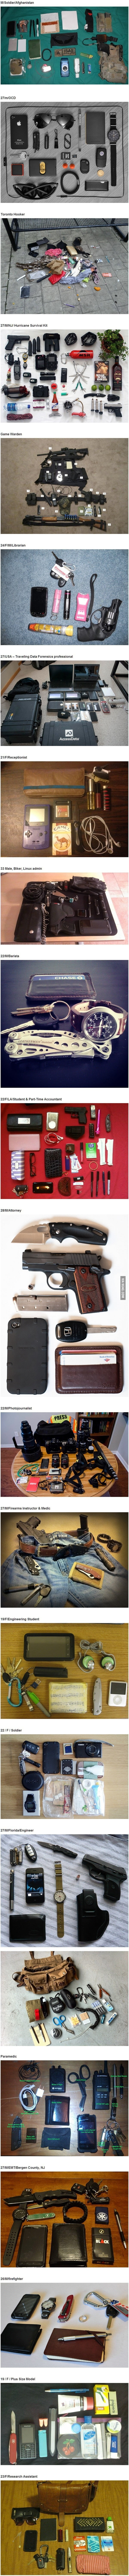 Things people carry!